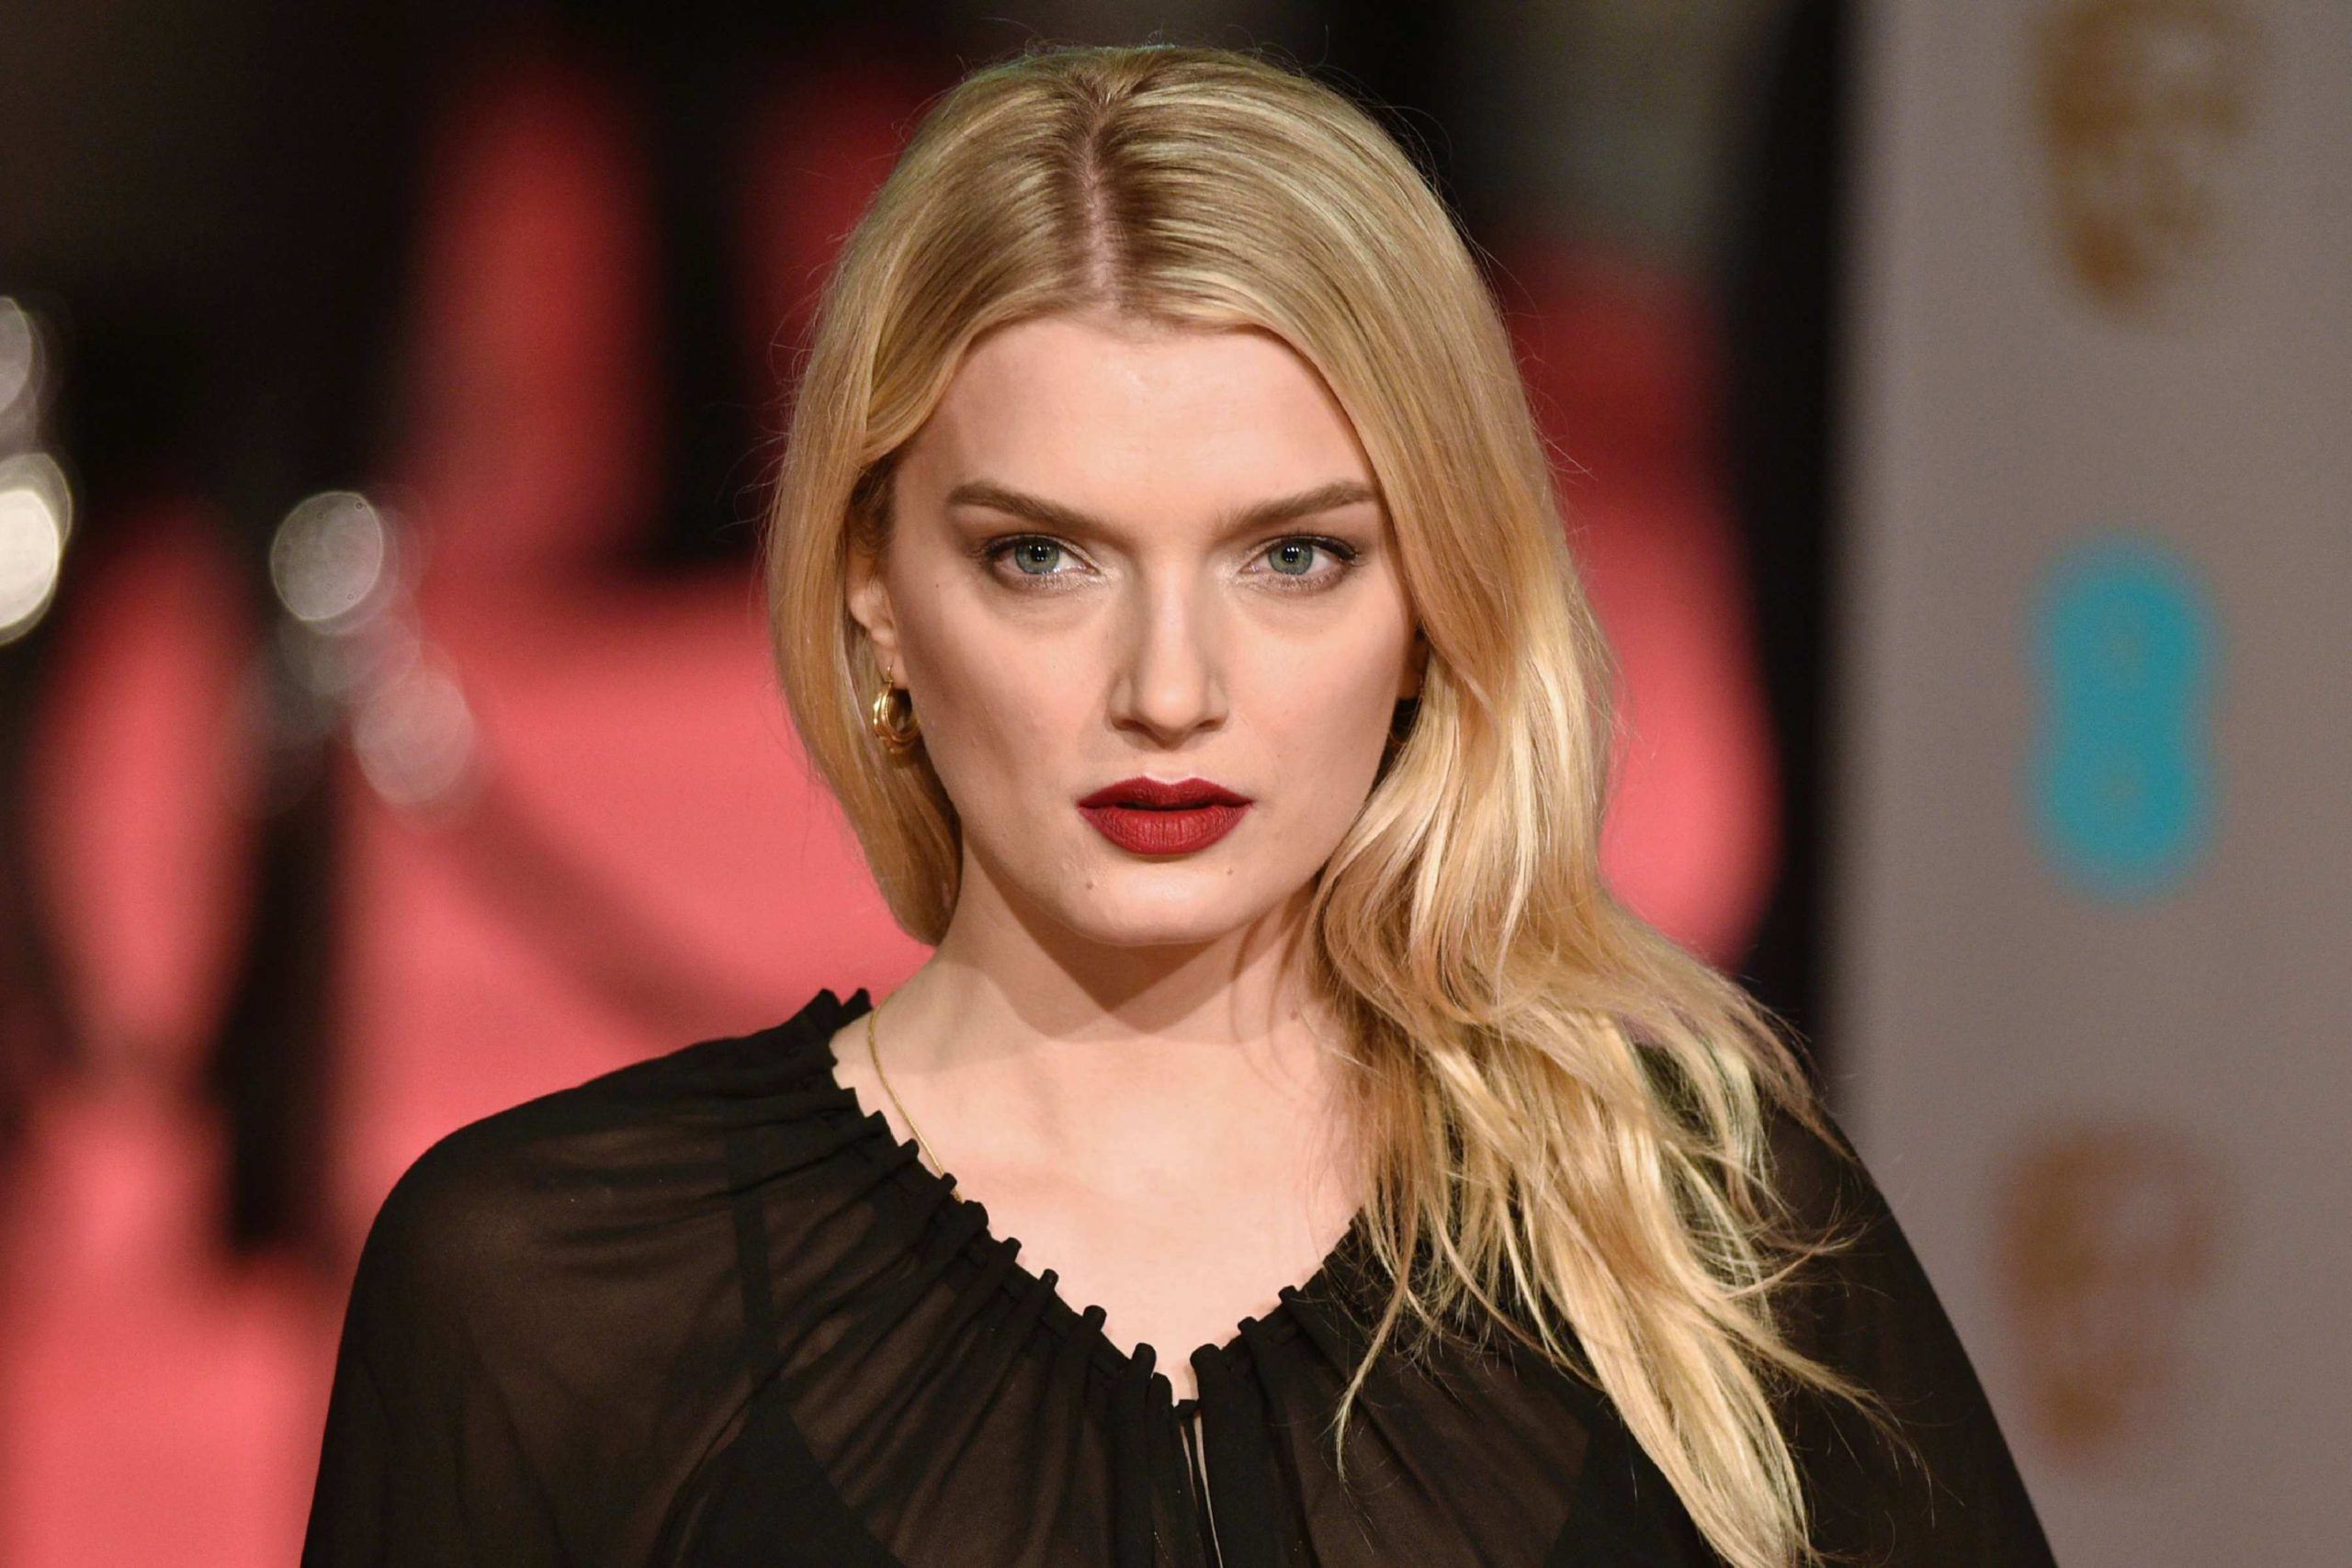 Lily Donaldson Pictures scaled - Lily Donaldson Pictures